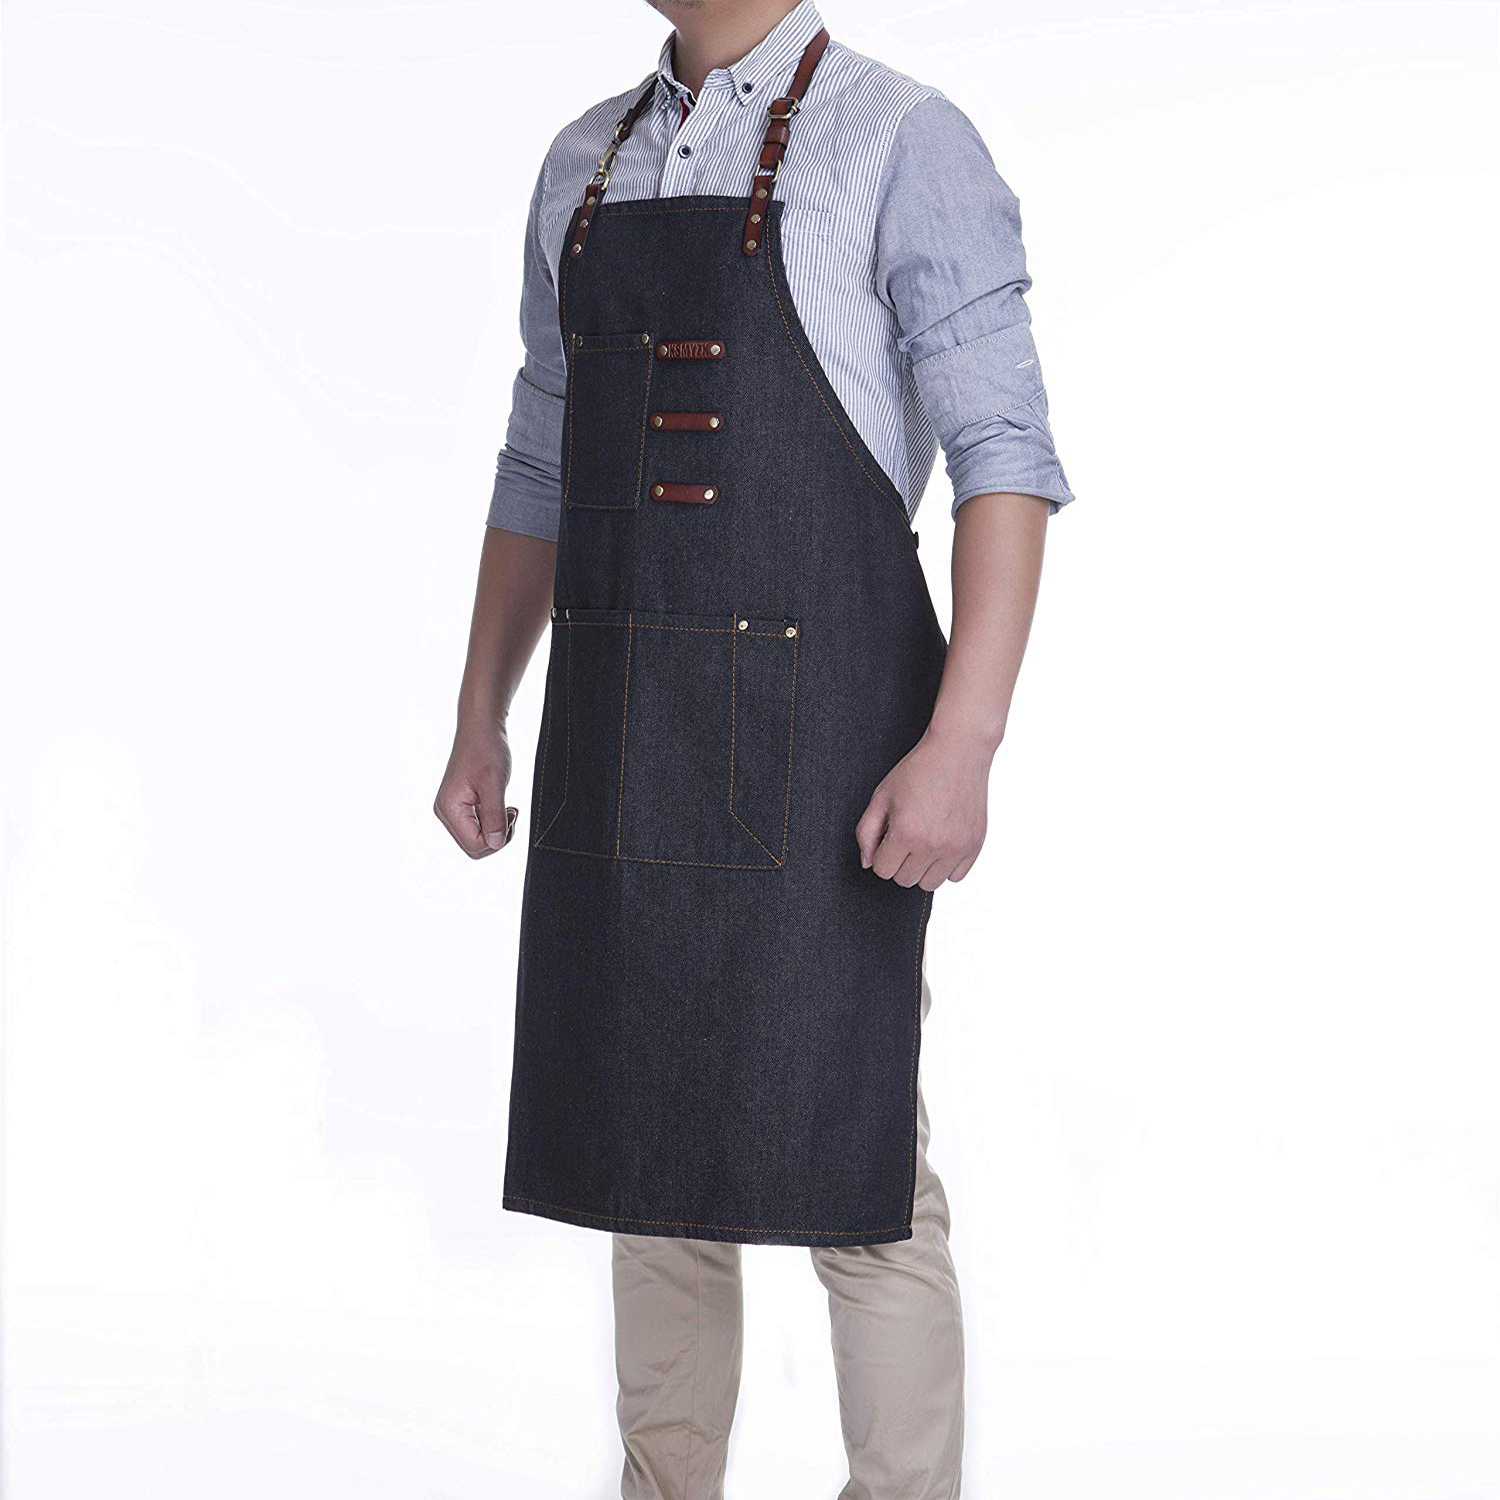 Denim Apron / Leather straps adjustable belt, suitable for a variety of body